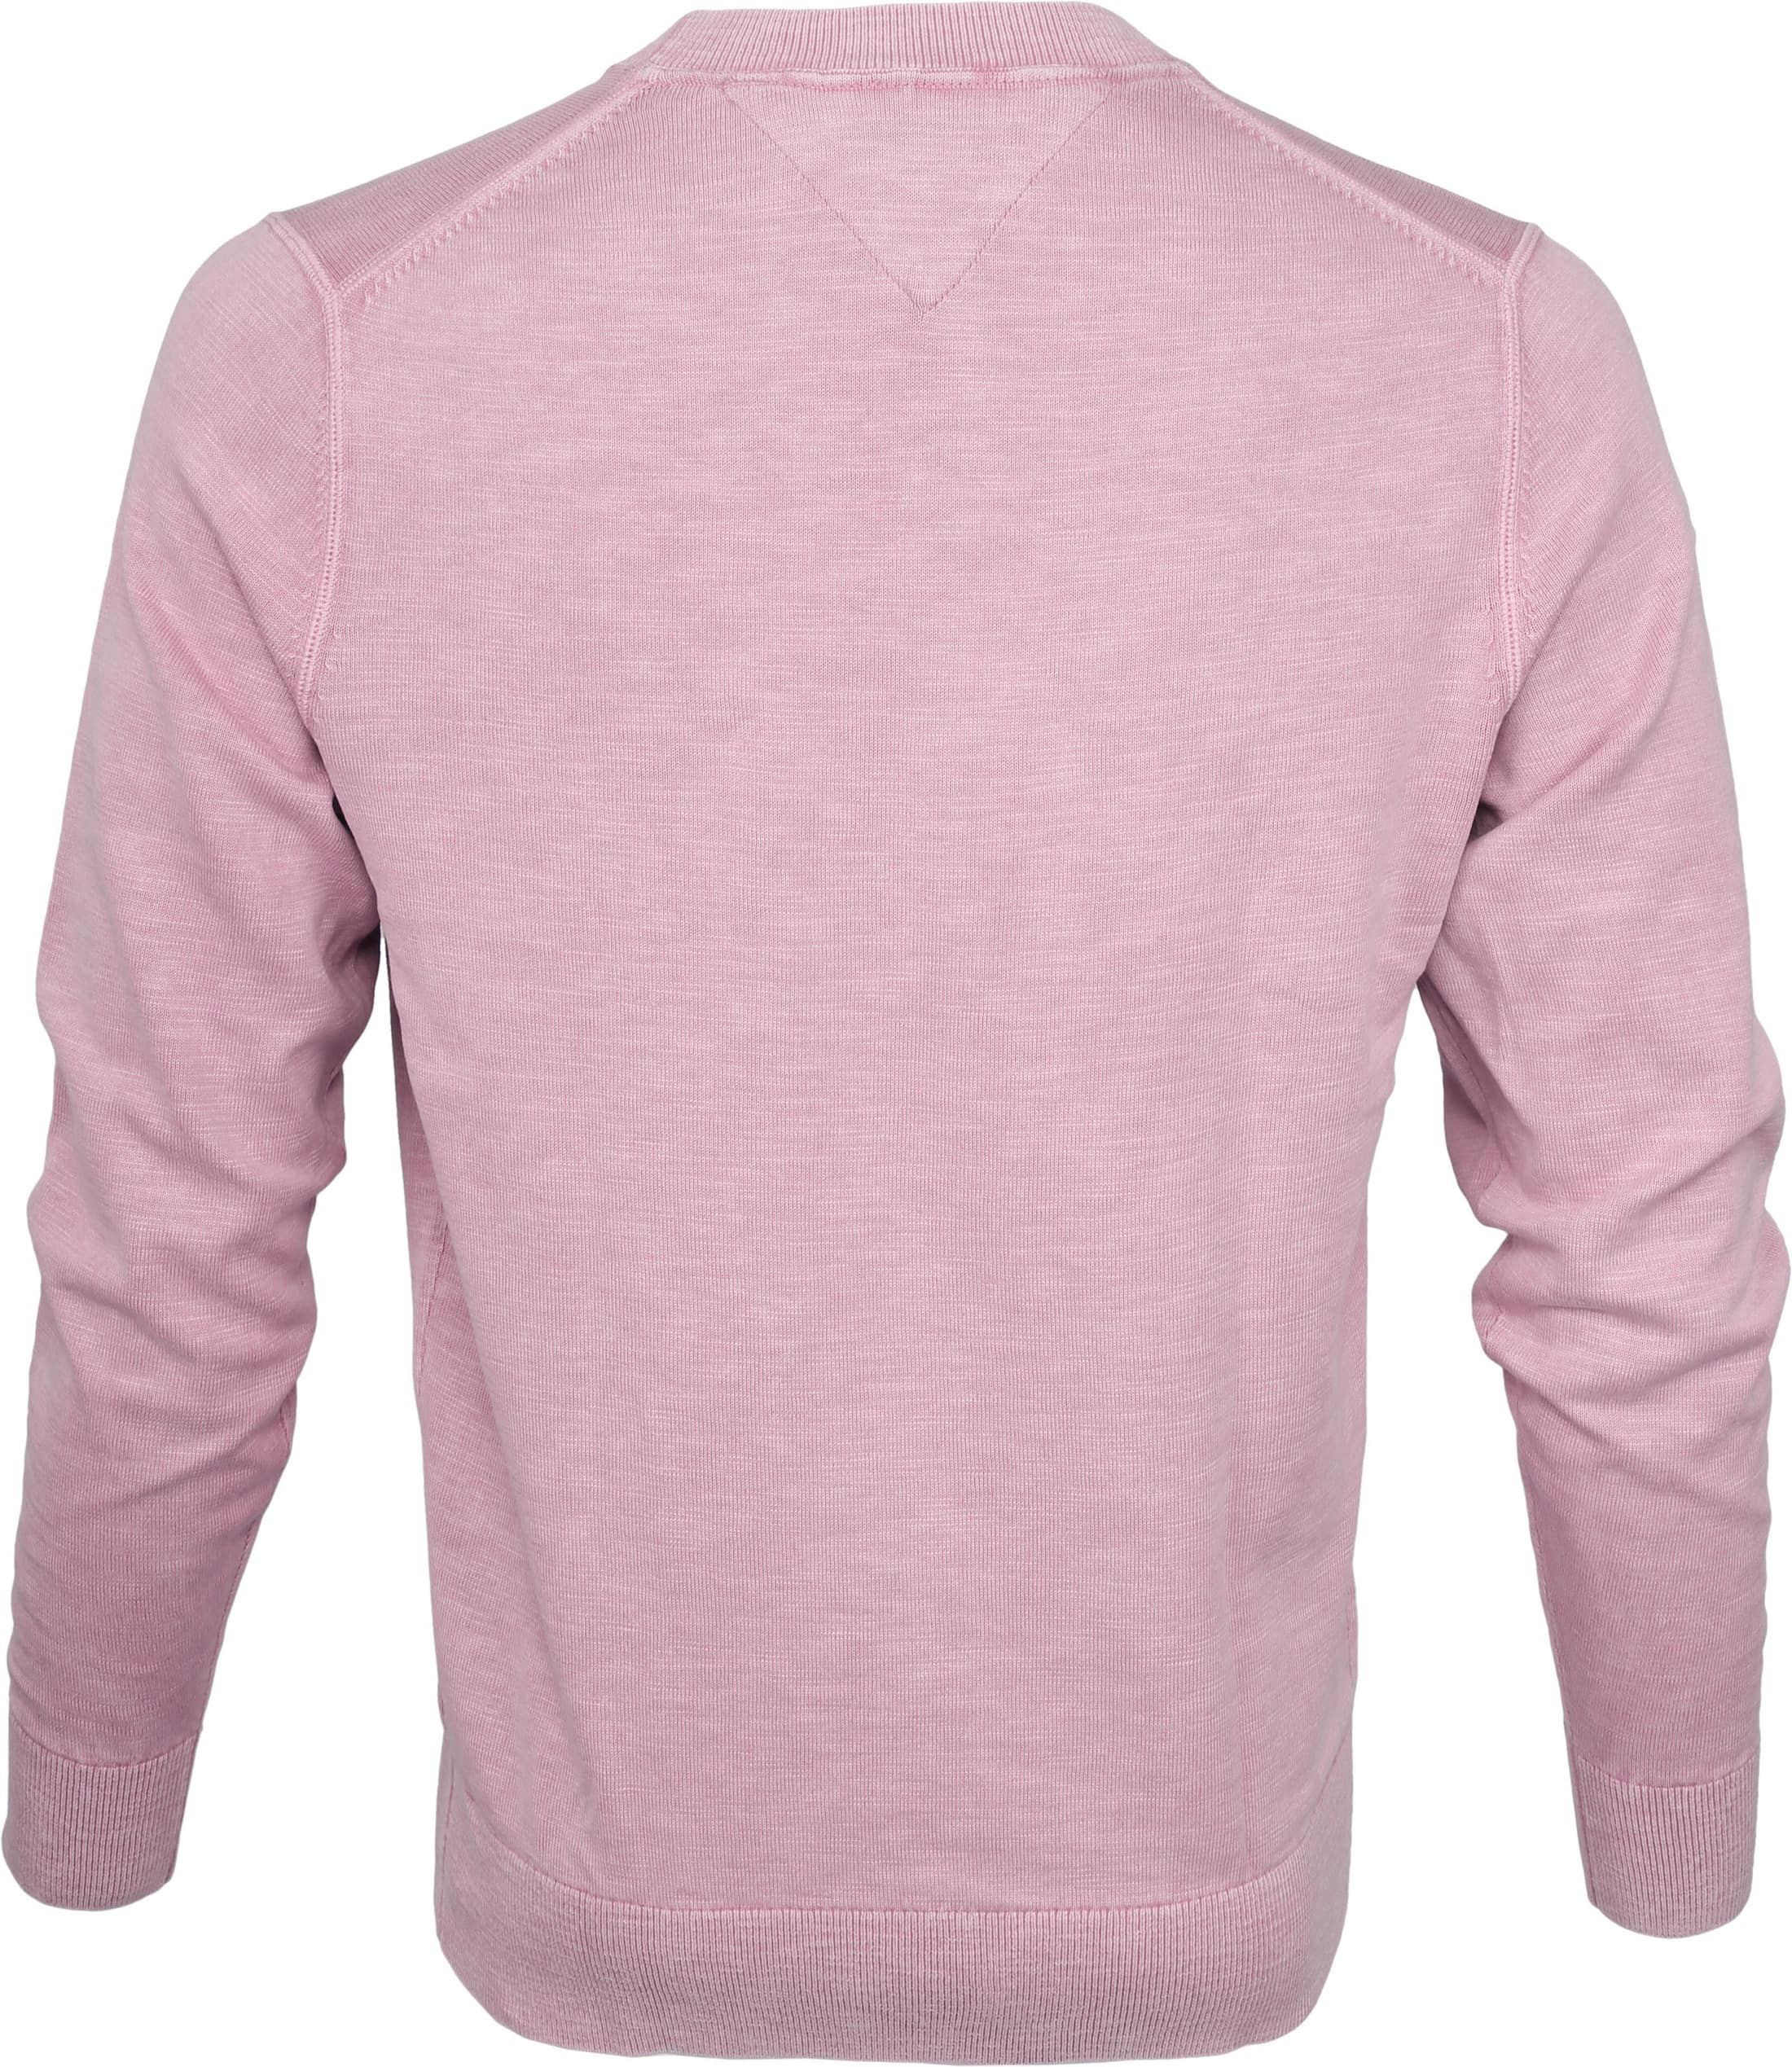 Tommy Hilfiger Pullover Dyed Lila foto 3